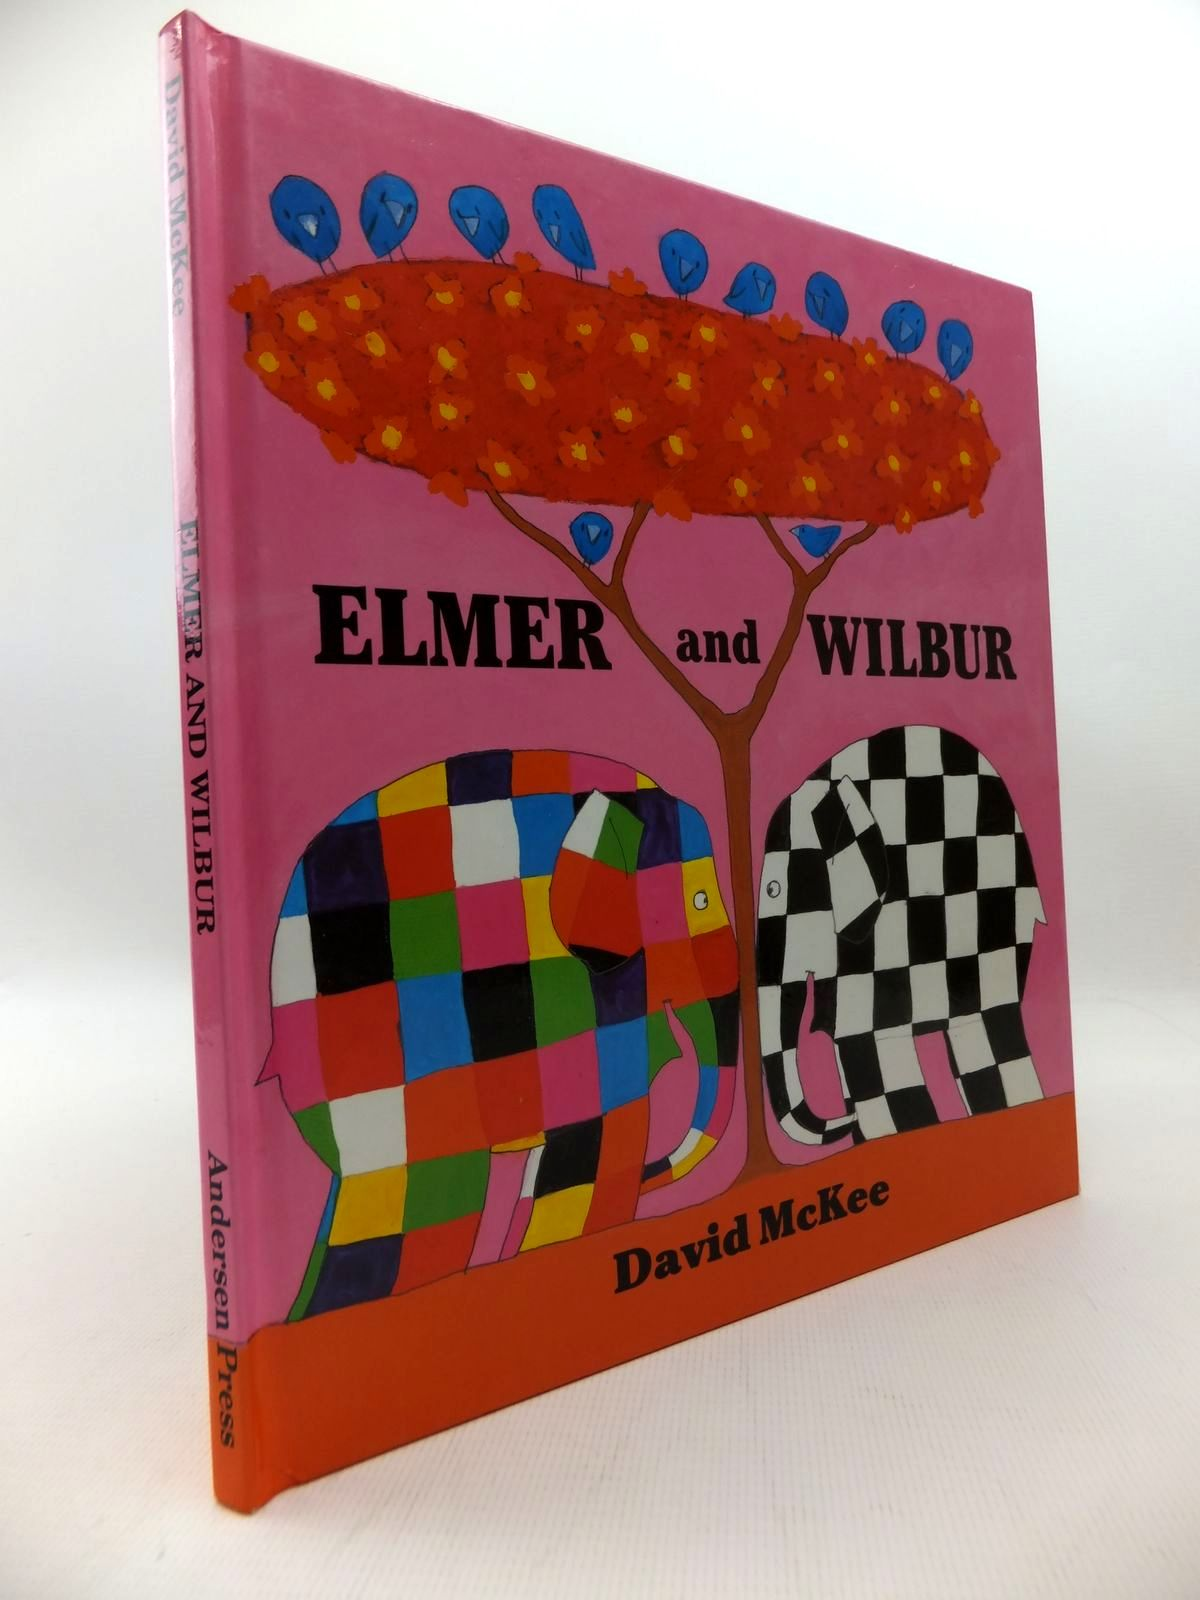 Photo of ELMER AND WILBUR written by McKee, David illustrated by McKee, David published by Anderson Press (STOCK CODE: 1814642)  for sale by Stella & Rose's Books